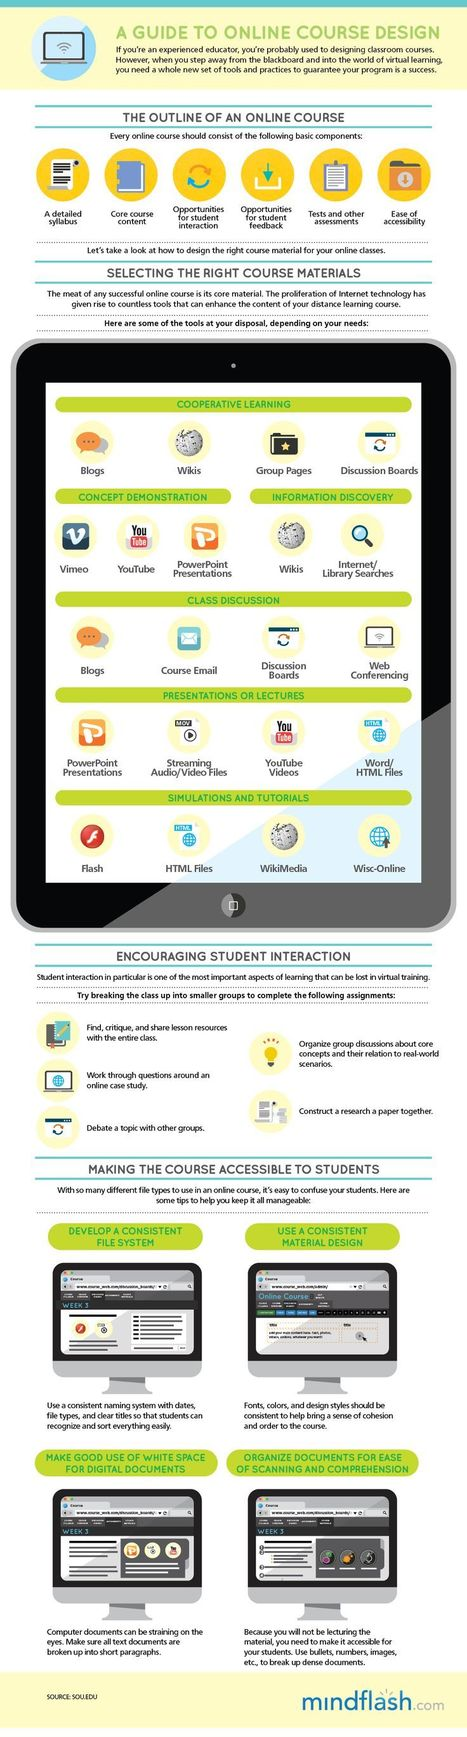 Guide to Online Course Design [INFOGRAPHIC] | LearnDash | 21st Century Teaching and Learning Resources | Scoop.it